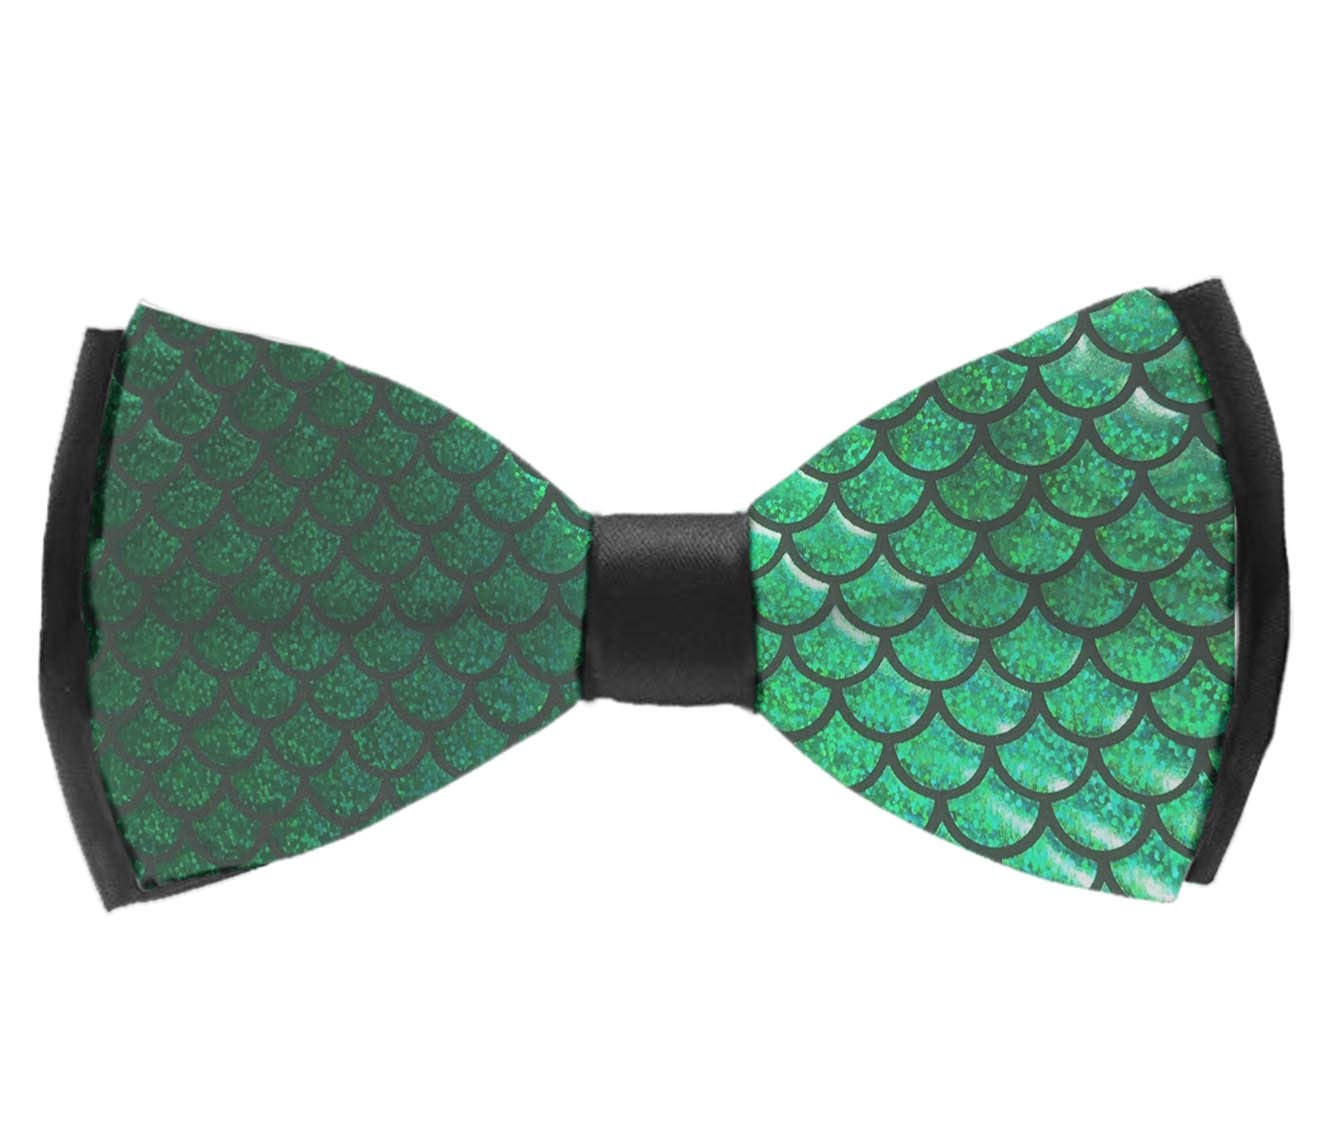 INWANZI Colorful Fish Scale Men Pre-Tied Bowtie with Adjustable Length Classic Party Bow Tie